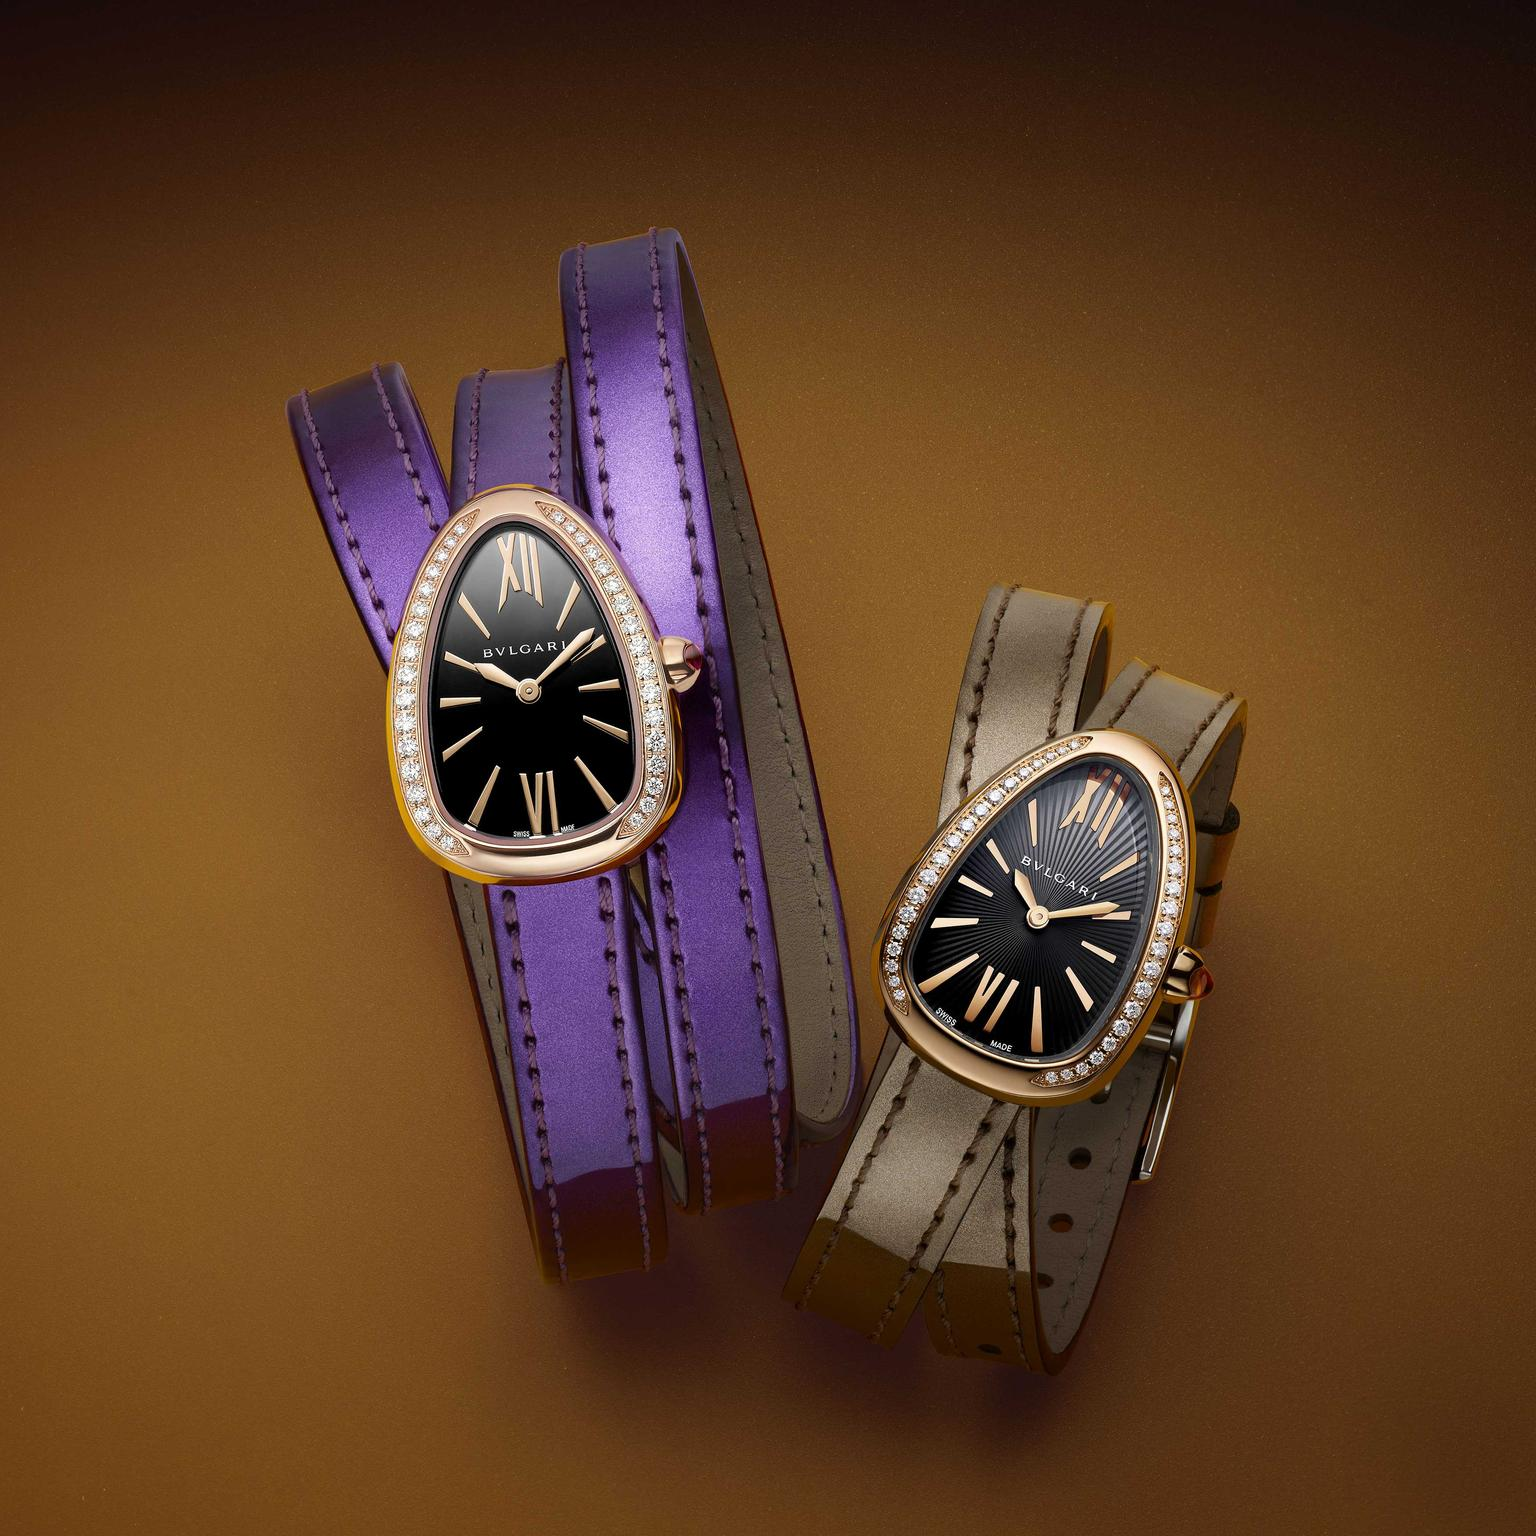 Bulgari Serpenti Twist Your Time ladies watches in gold on metallic leather straps